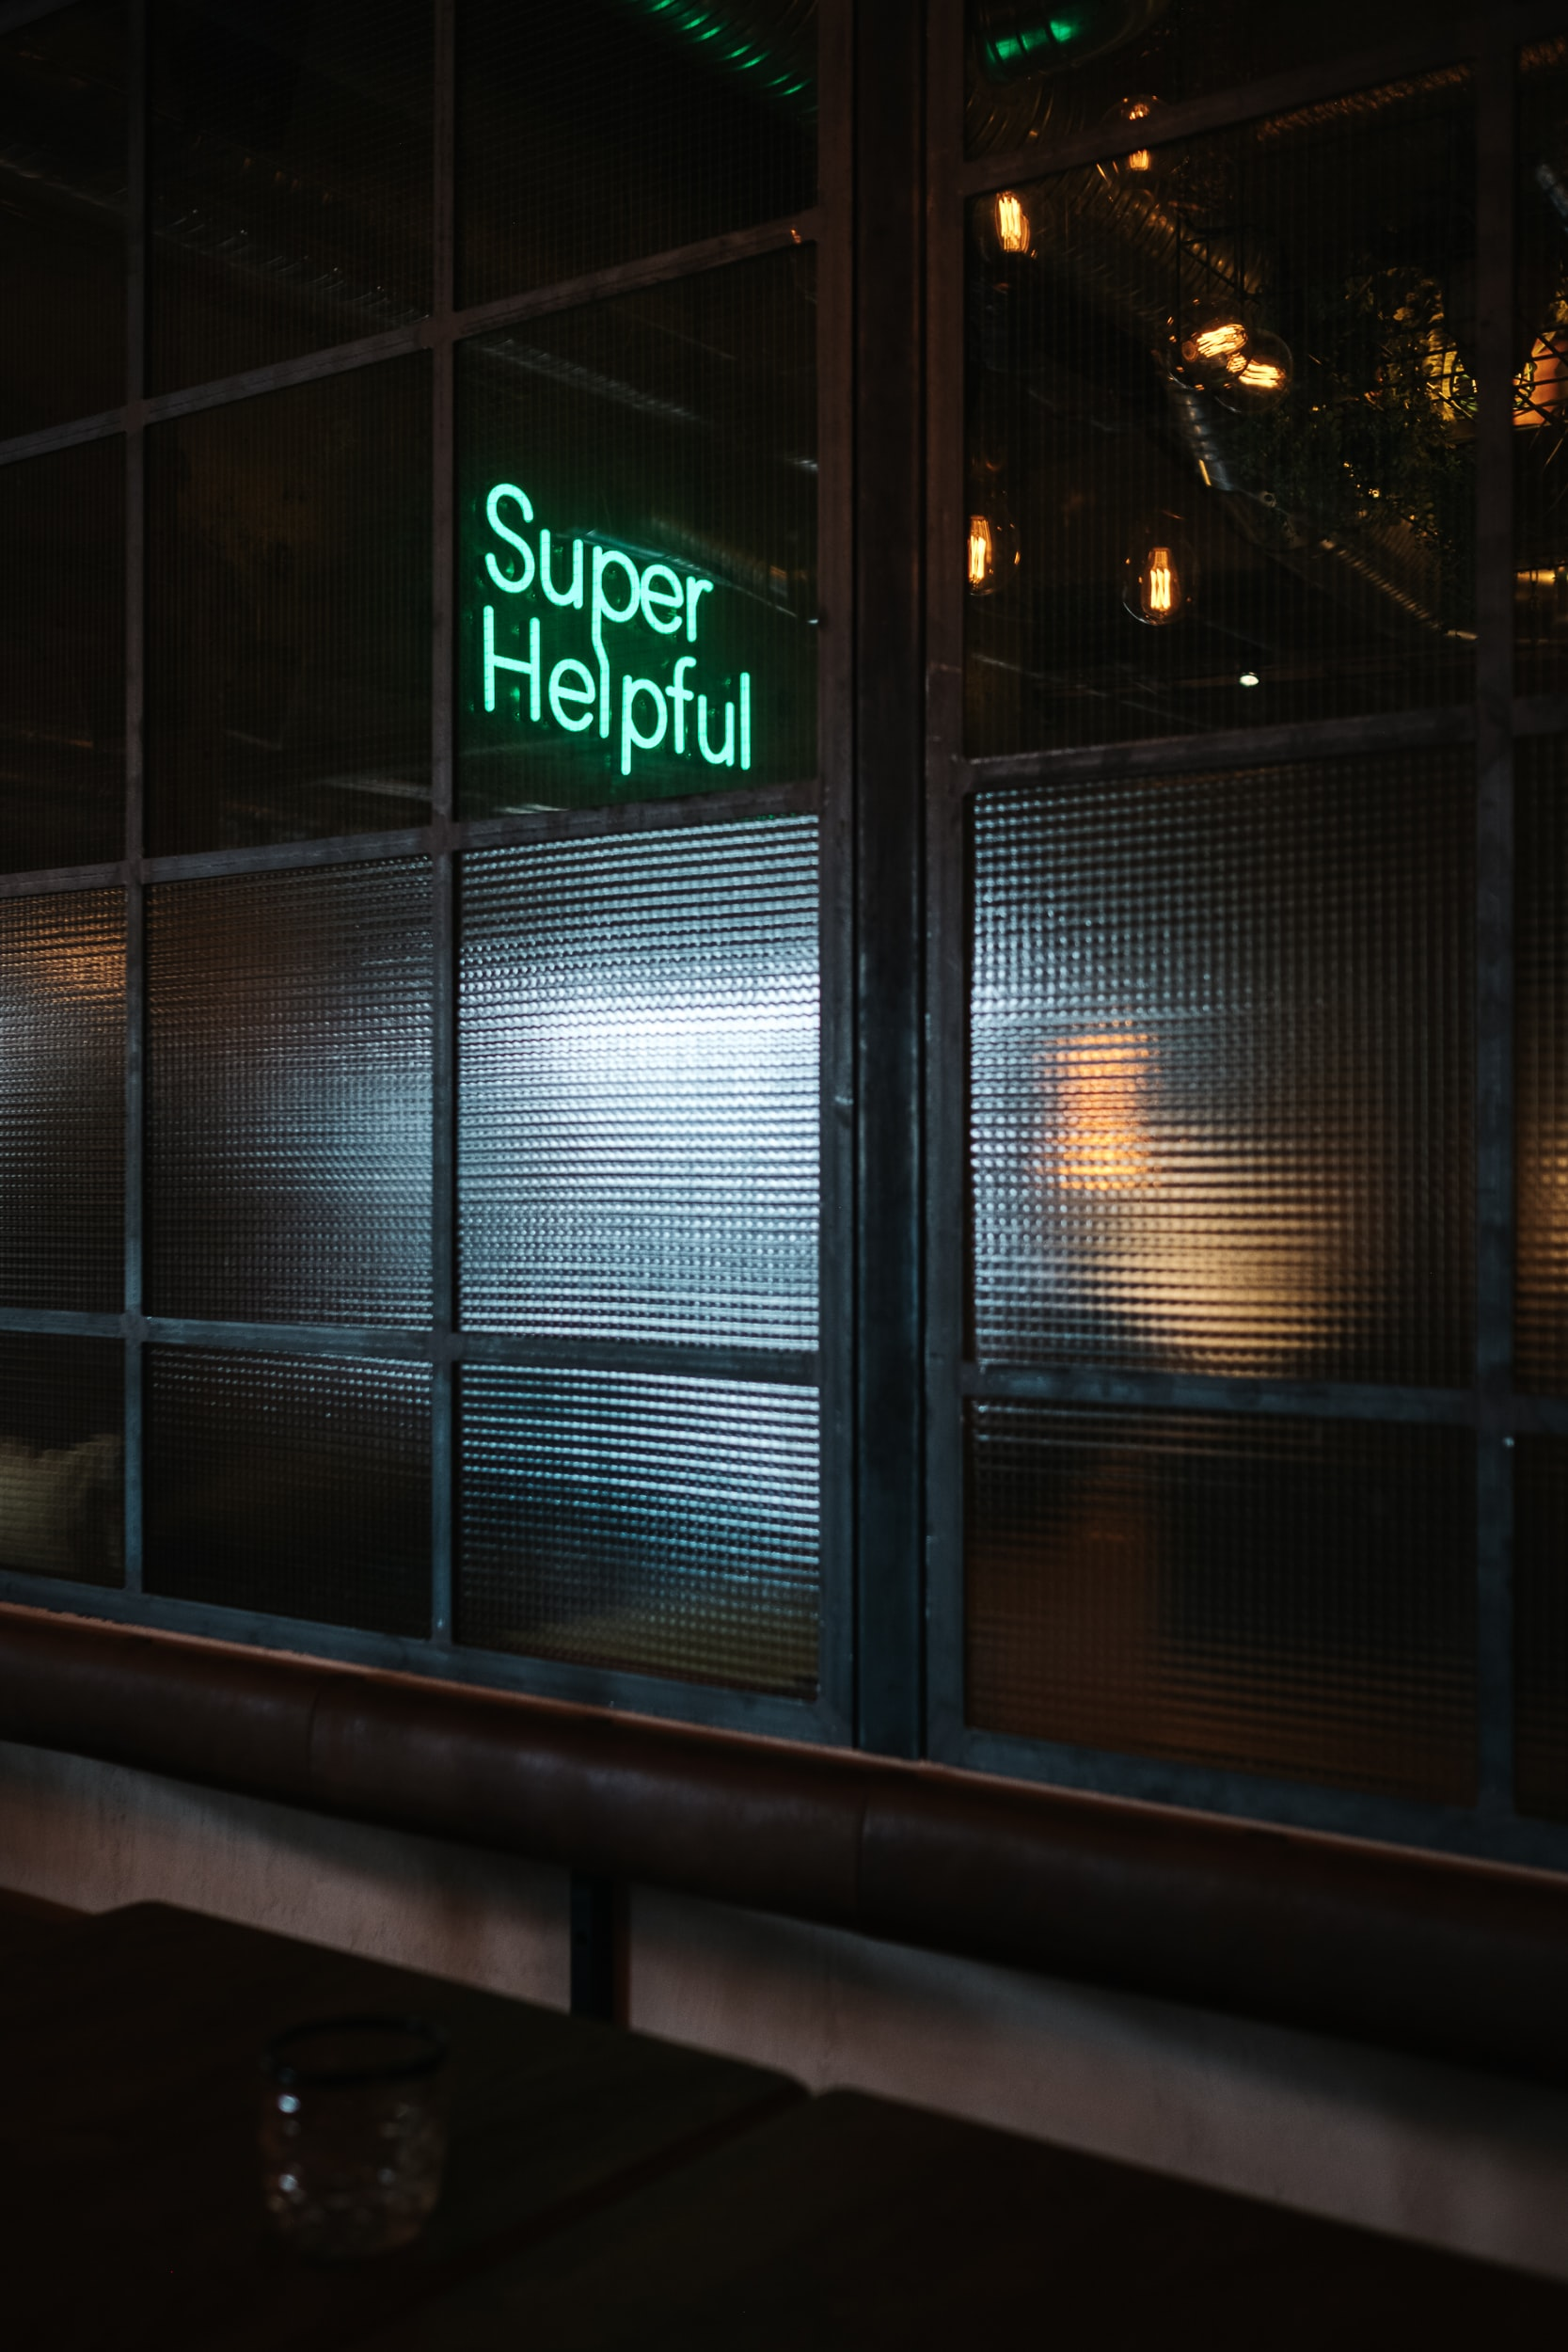 green Super helpful neon signage near window